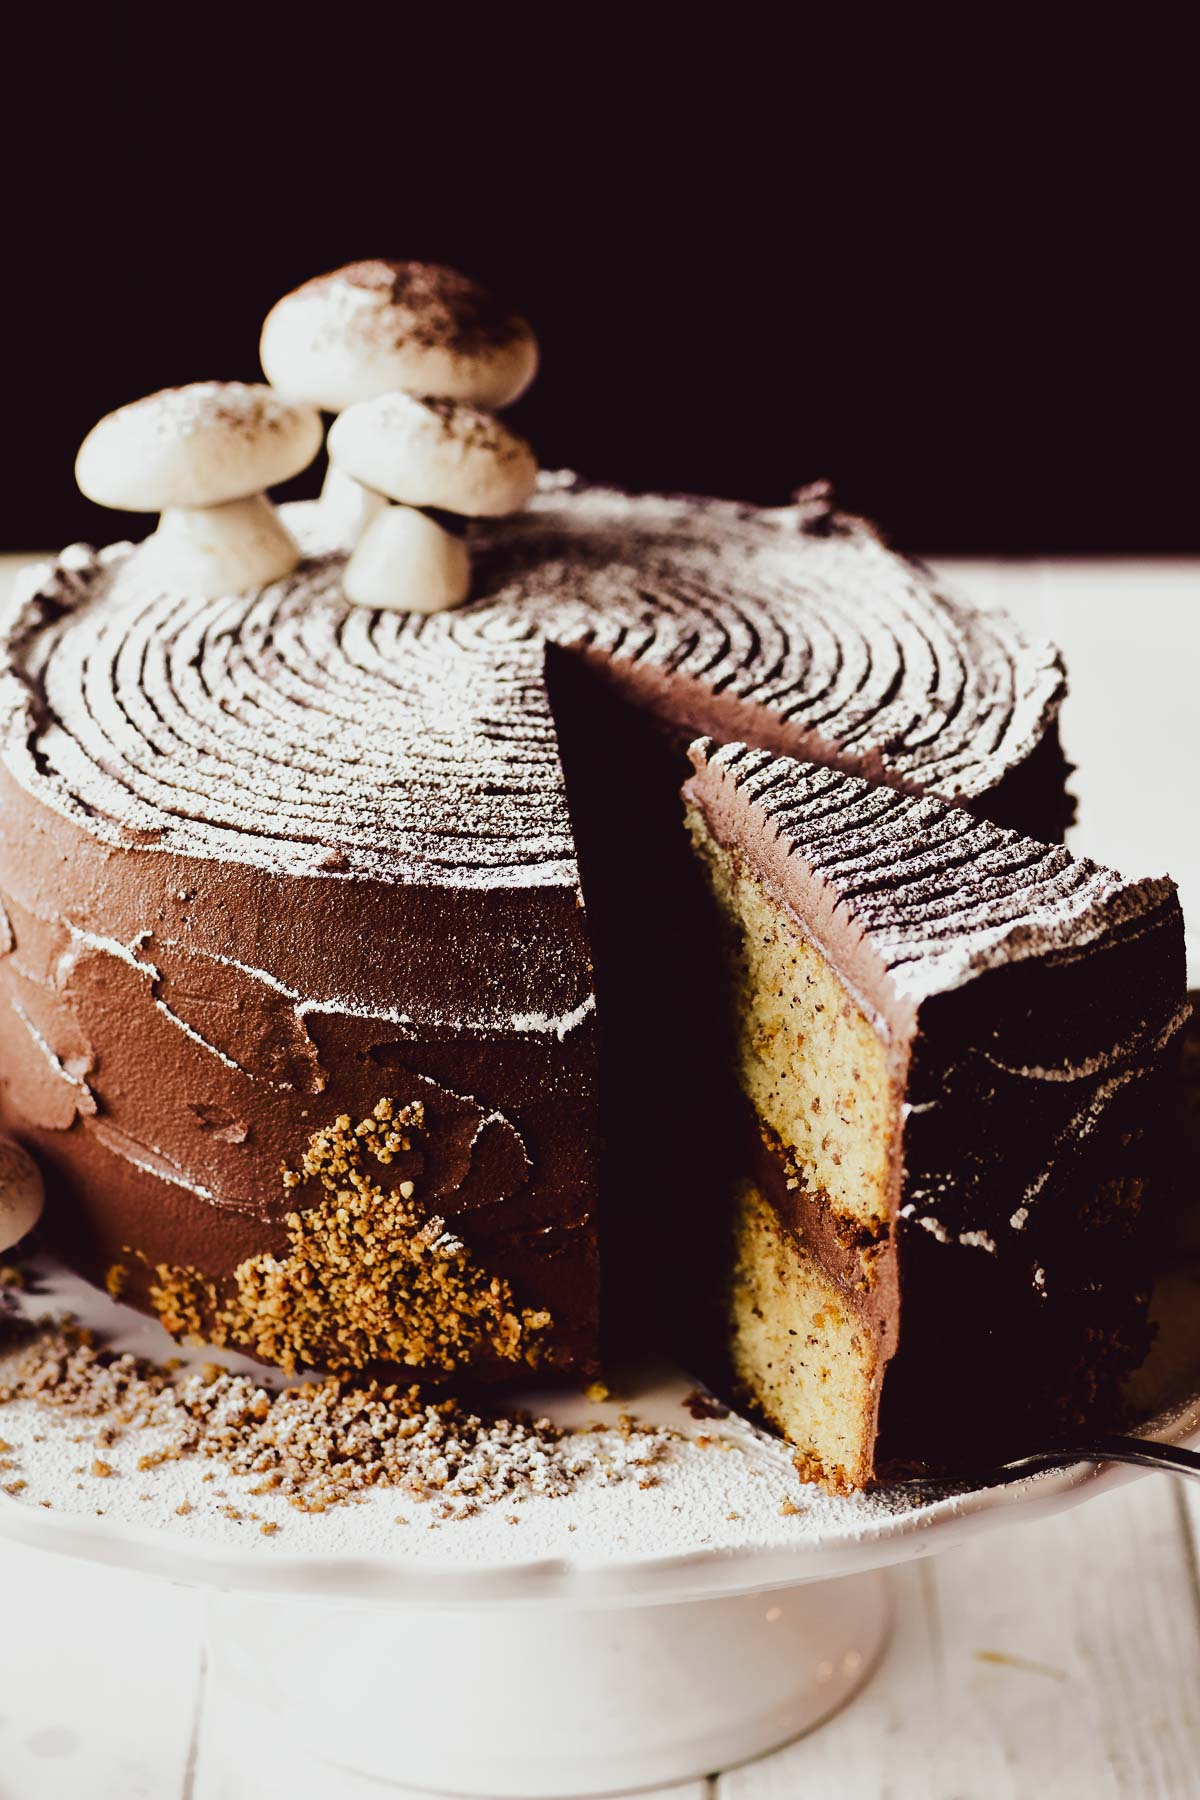 buche de noel layer cake on a cake stand with meringue mushrooms